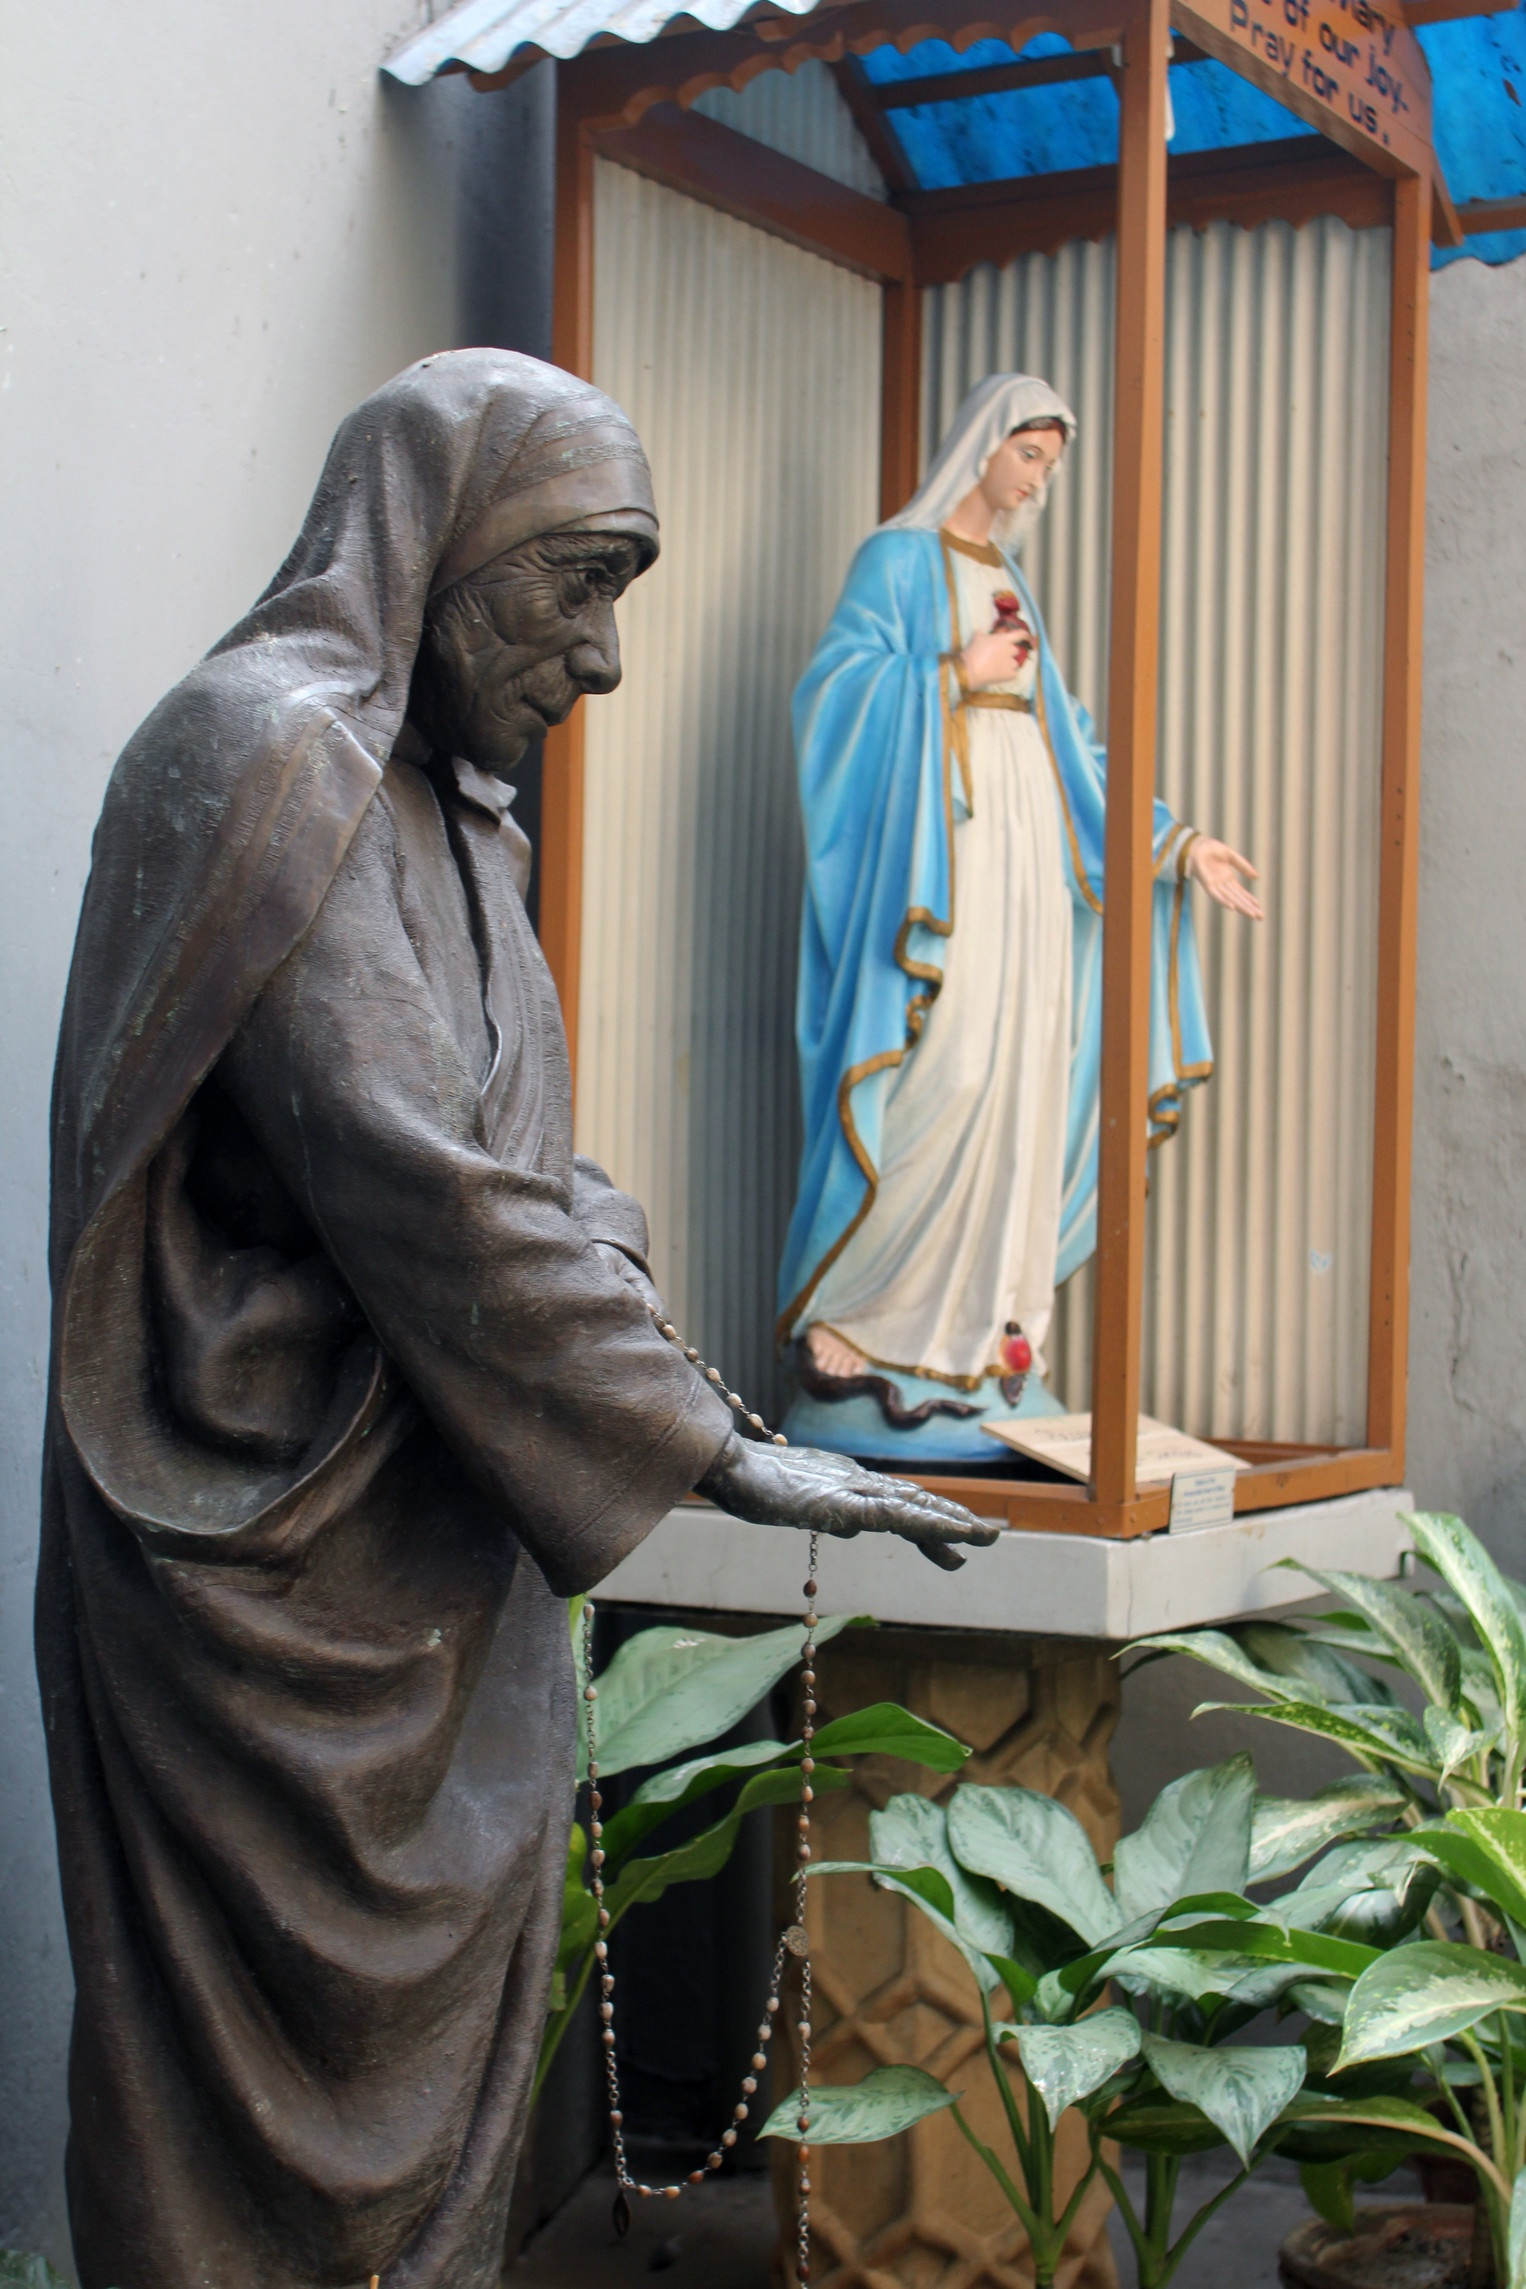 Statue of Mother Teresa in Calcutta, India | csp_zatletic